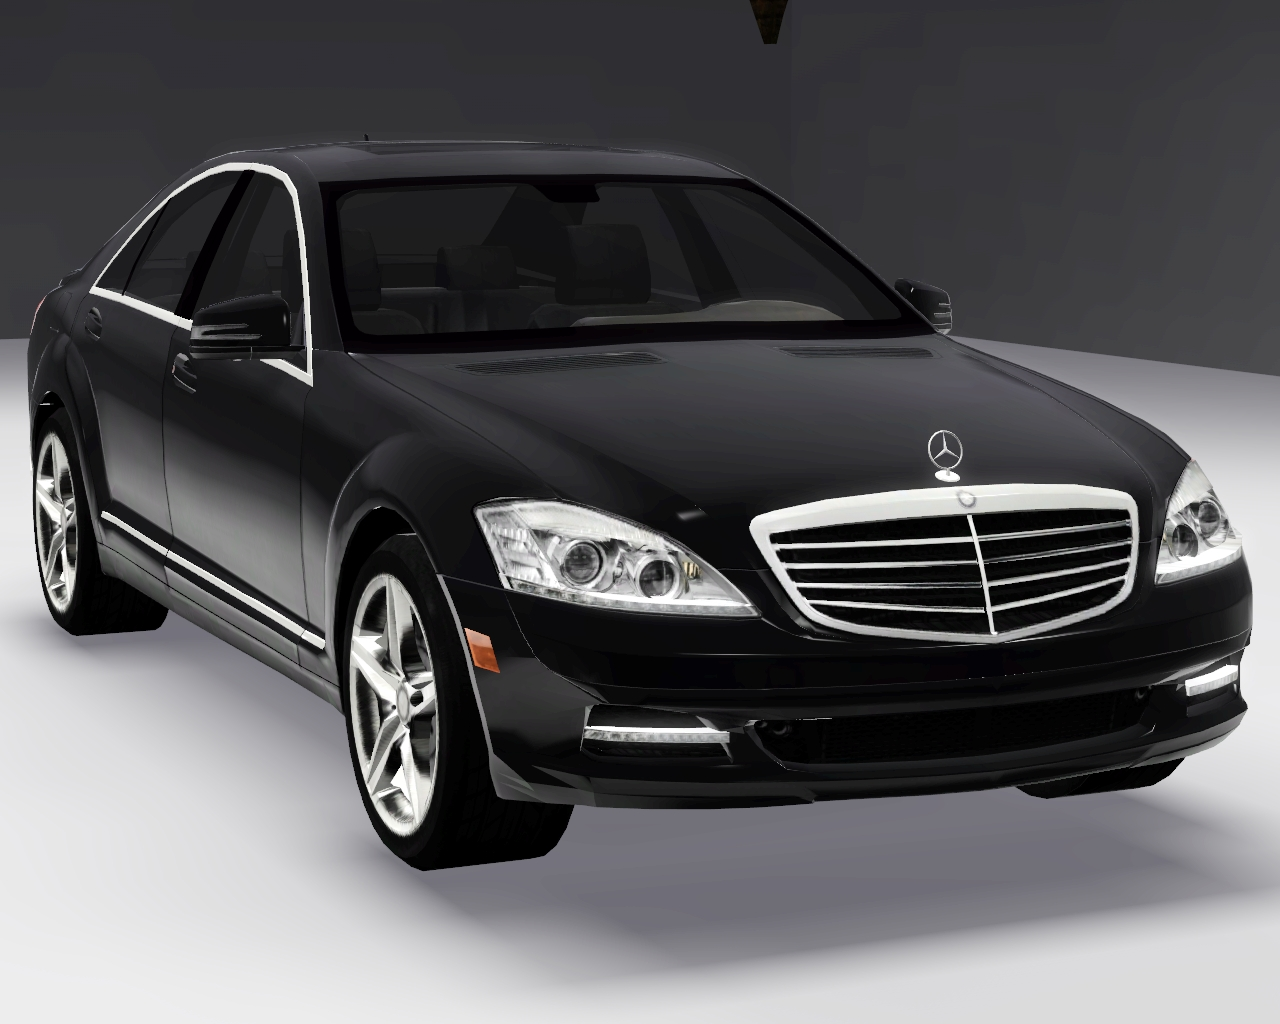 2011 Mercedes-Benz S550 by Fresh-Prince